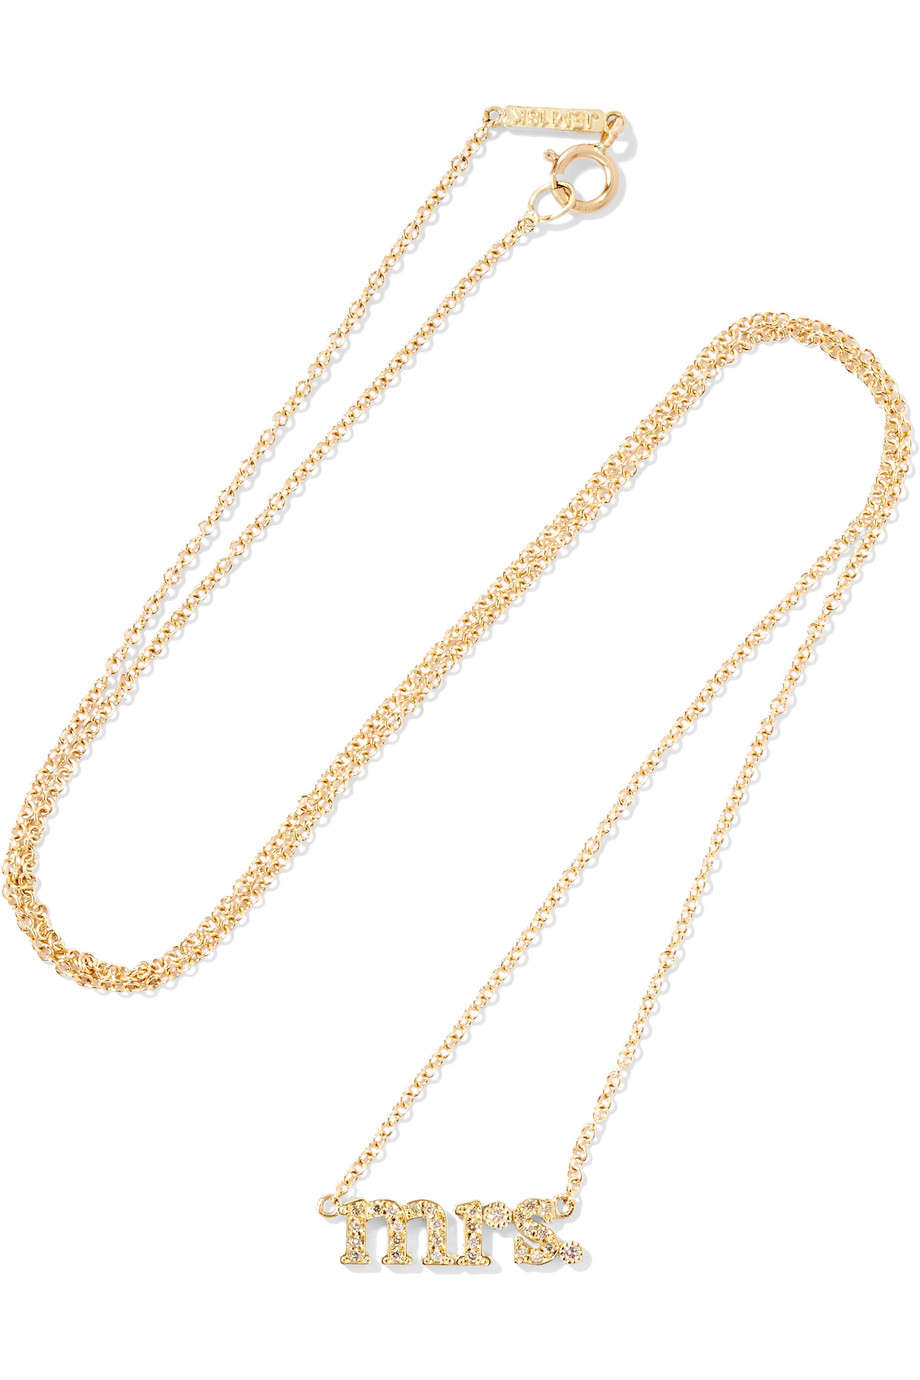 Jennifer Meyer Mrs 18-Karat Gold Diamond Necklace, Women's